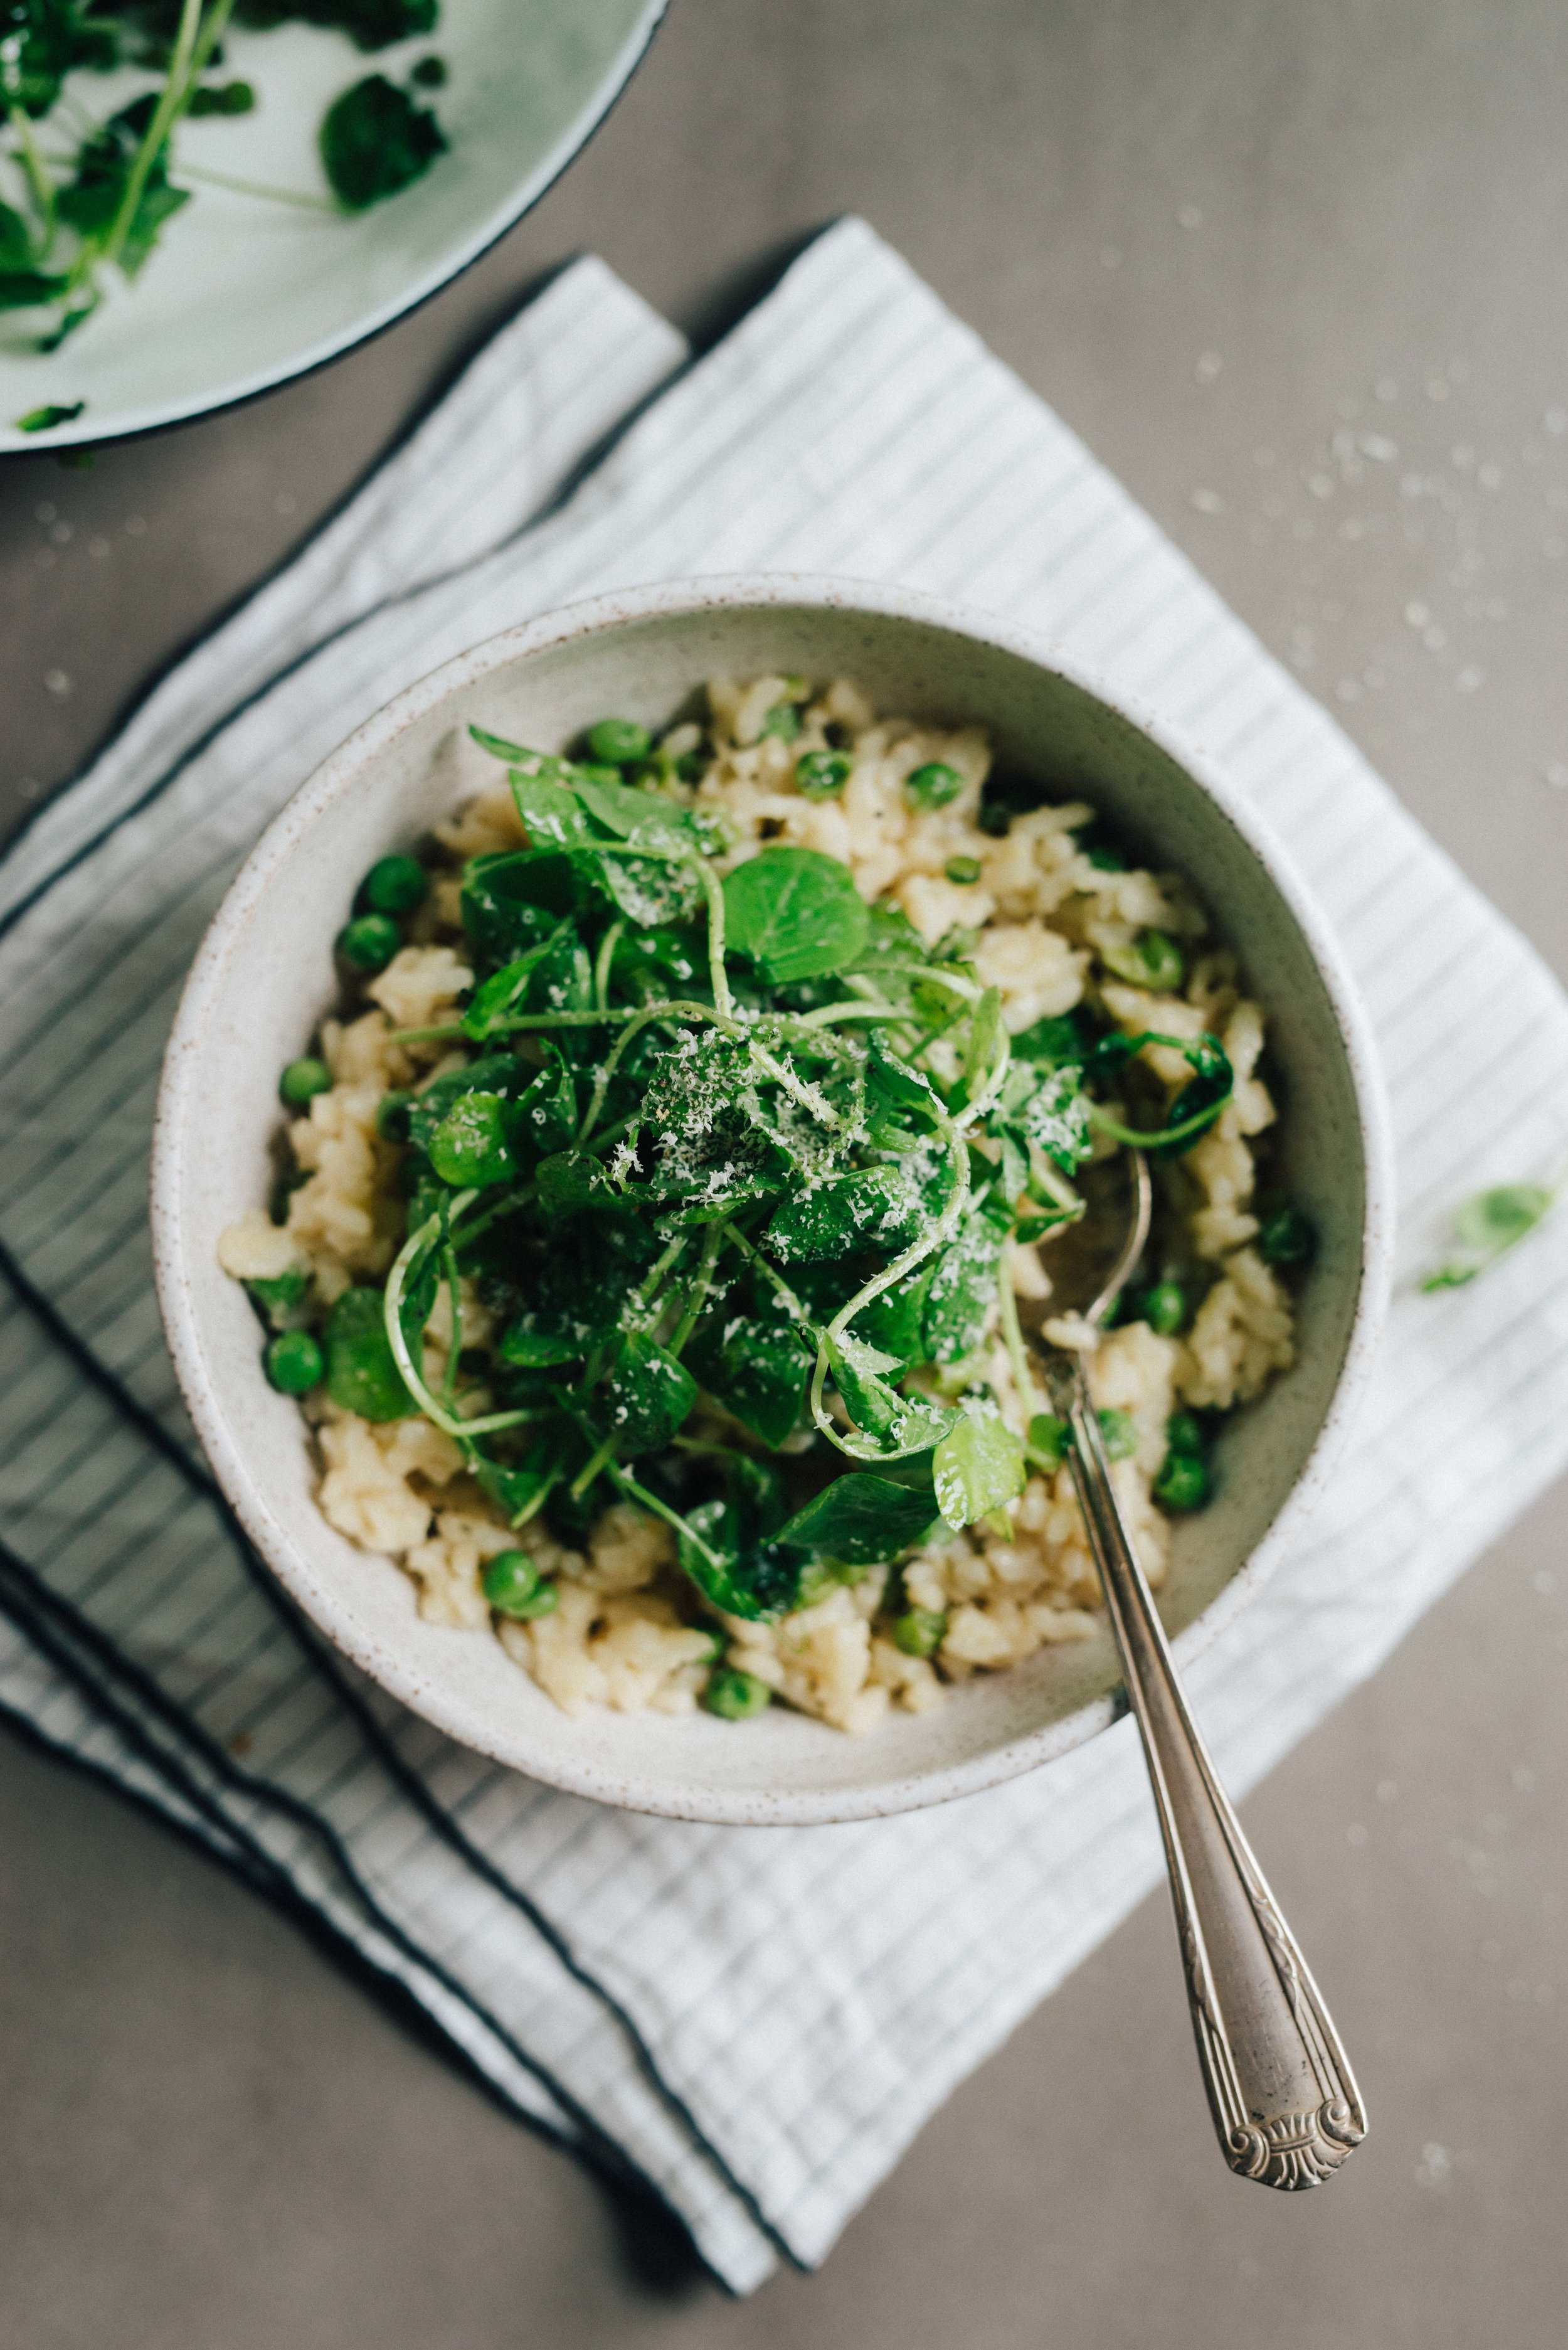 Sweet Pea Oven Risotto w/ Garlicky Pea Shoots